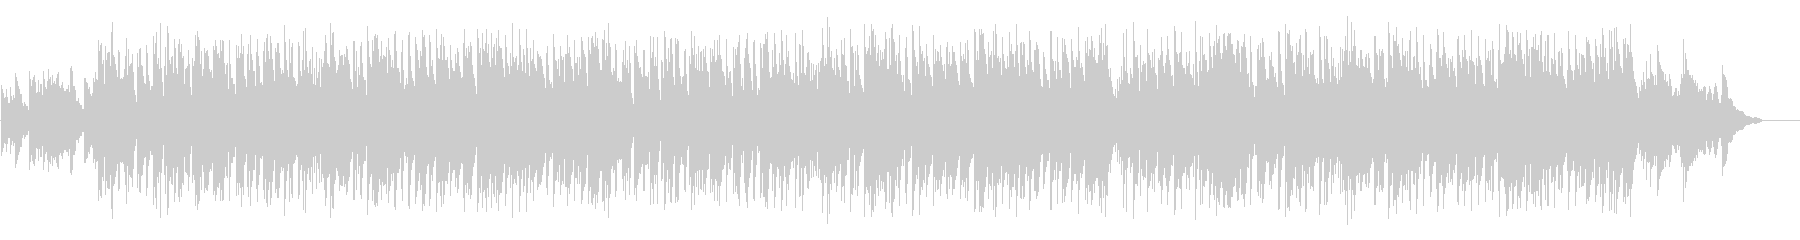 Crossfade screen of smiles and memories's unreproduced waveform